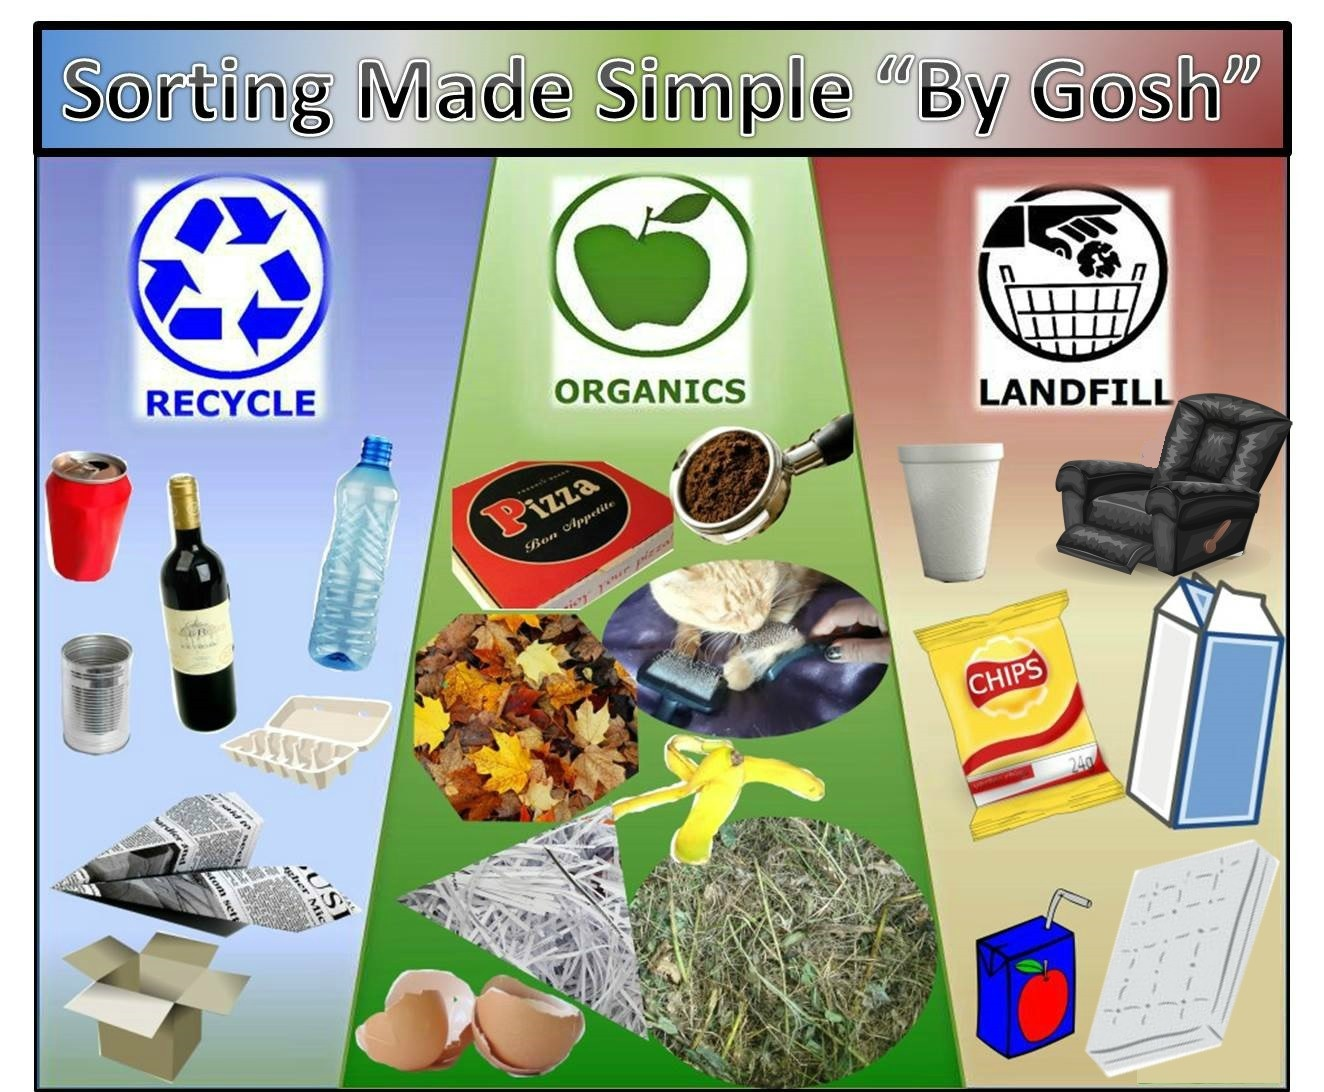 Sorting Made Simple What Goes In The Organics Bin